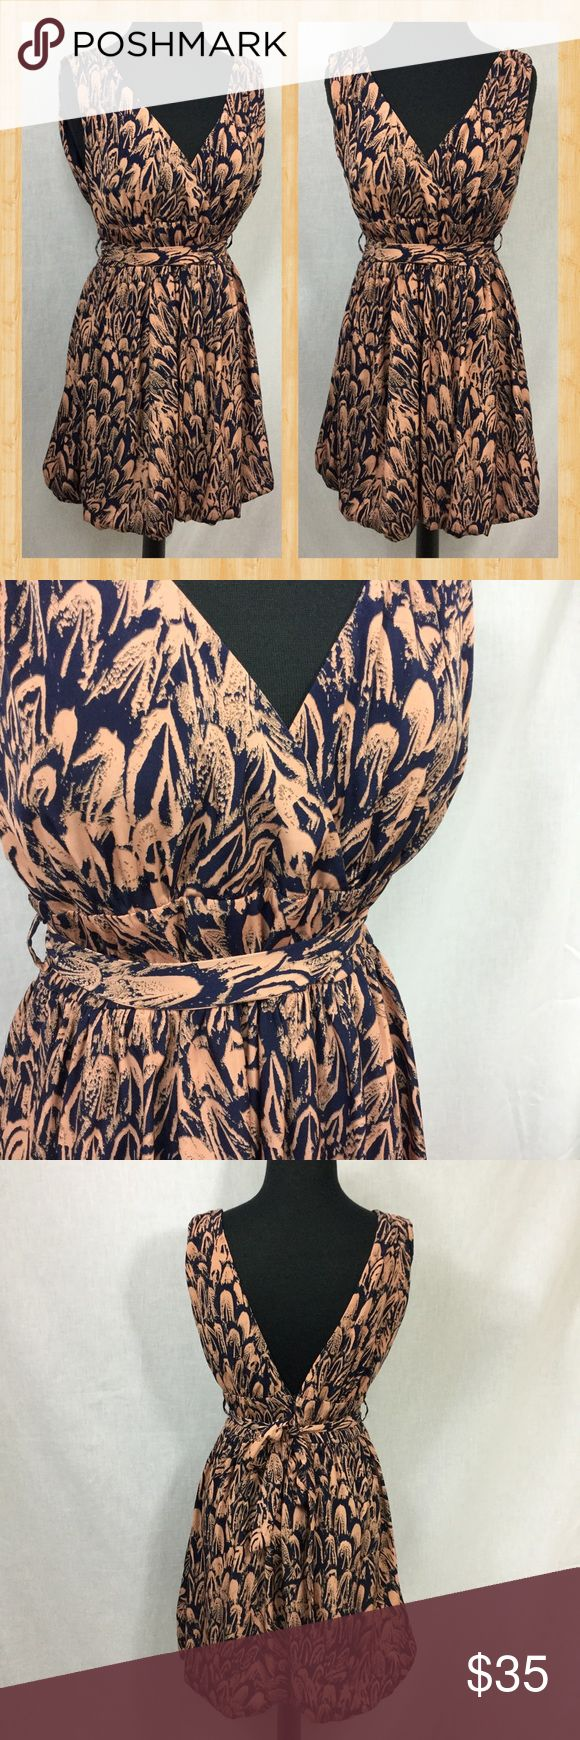 "Apricot Lane Dress Ya Los Angeles dress purchased from Apricot Lane.  Elastic slight bubble bottom.  Removable belt.  Deep V back.  Navy & salmon color.  Laying flat: armpit to armpit 15""... pulled to 18"" comfortably, waist 15"", length 33"". Ya Los Angeles Dresses"